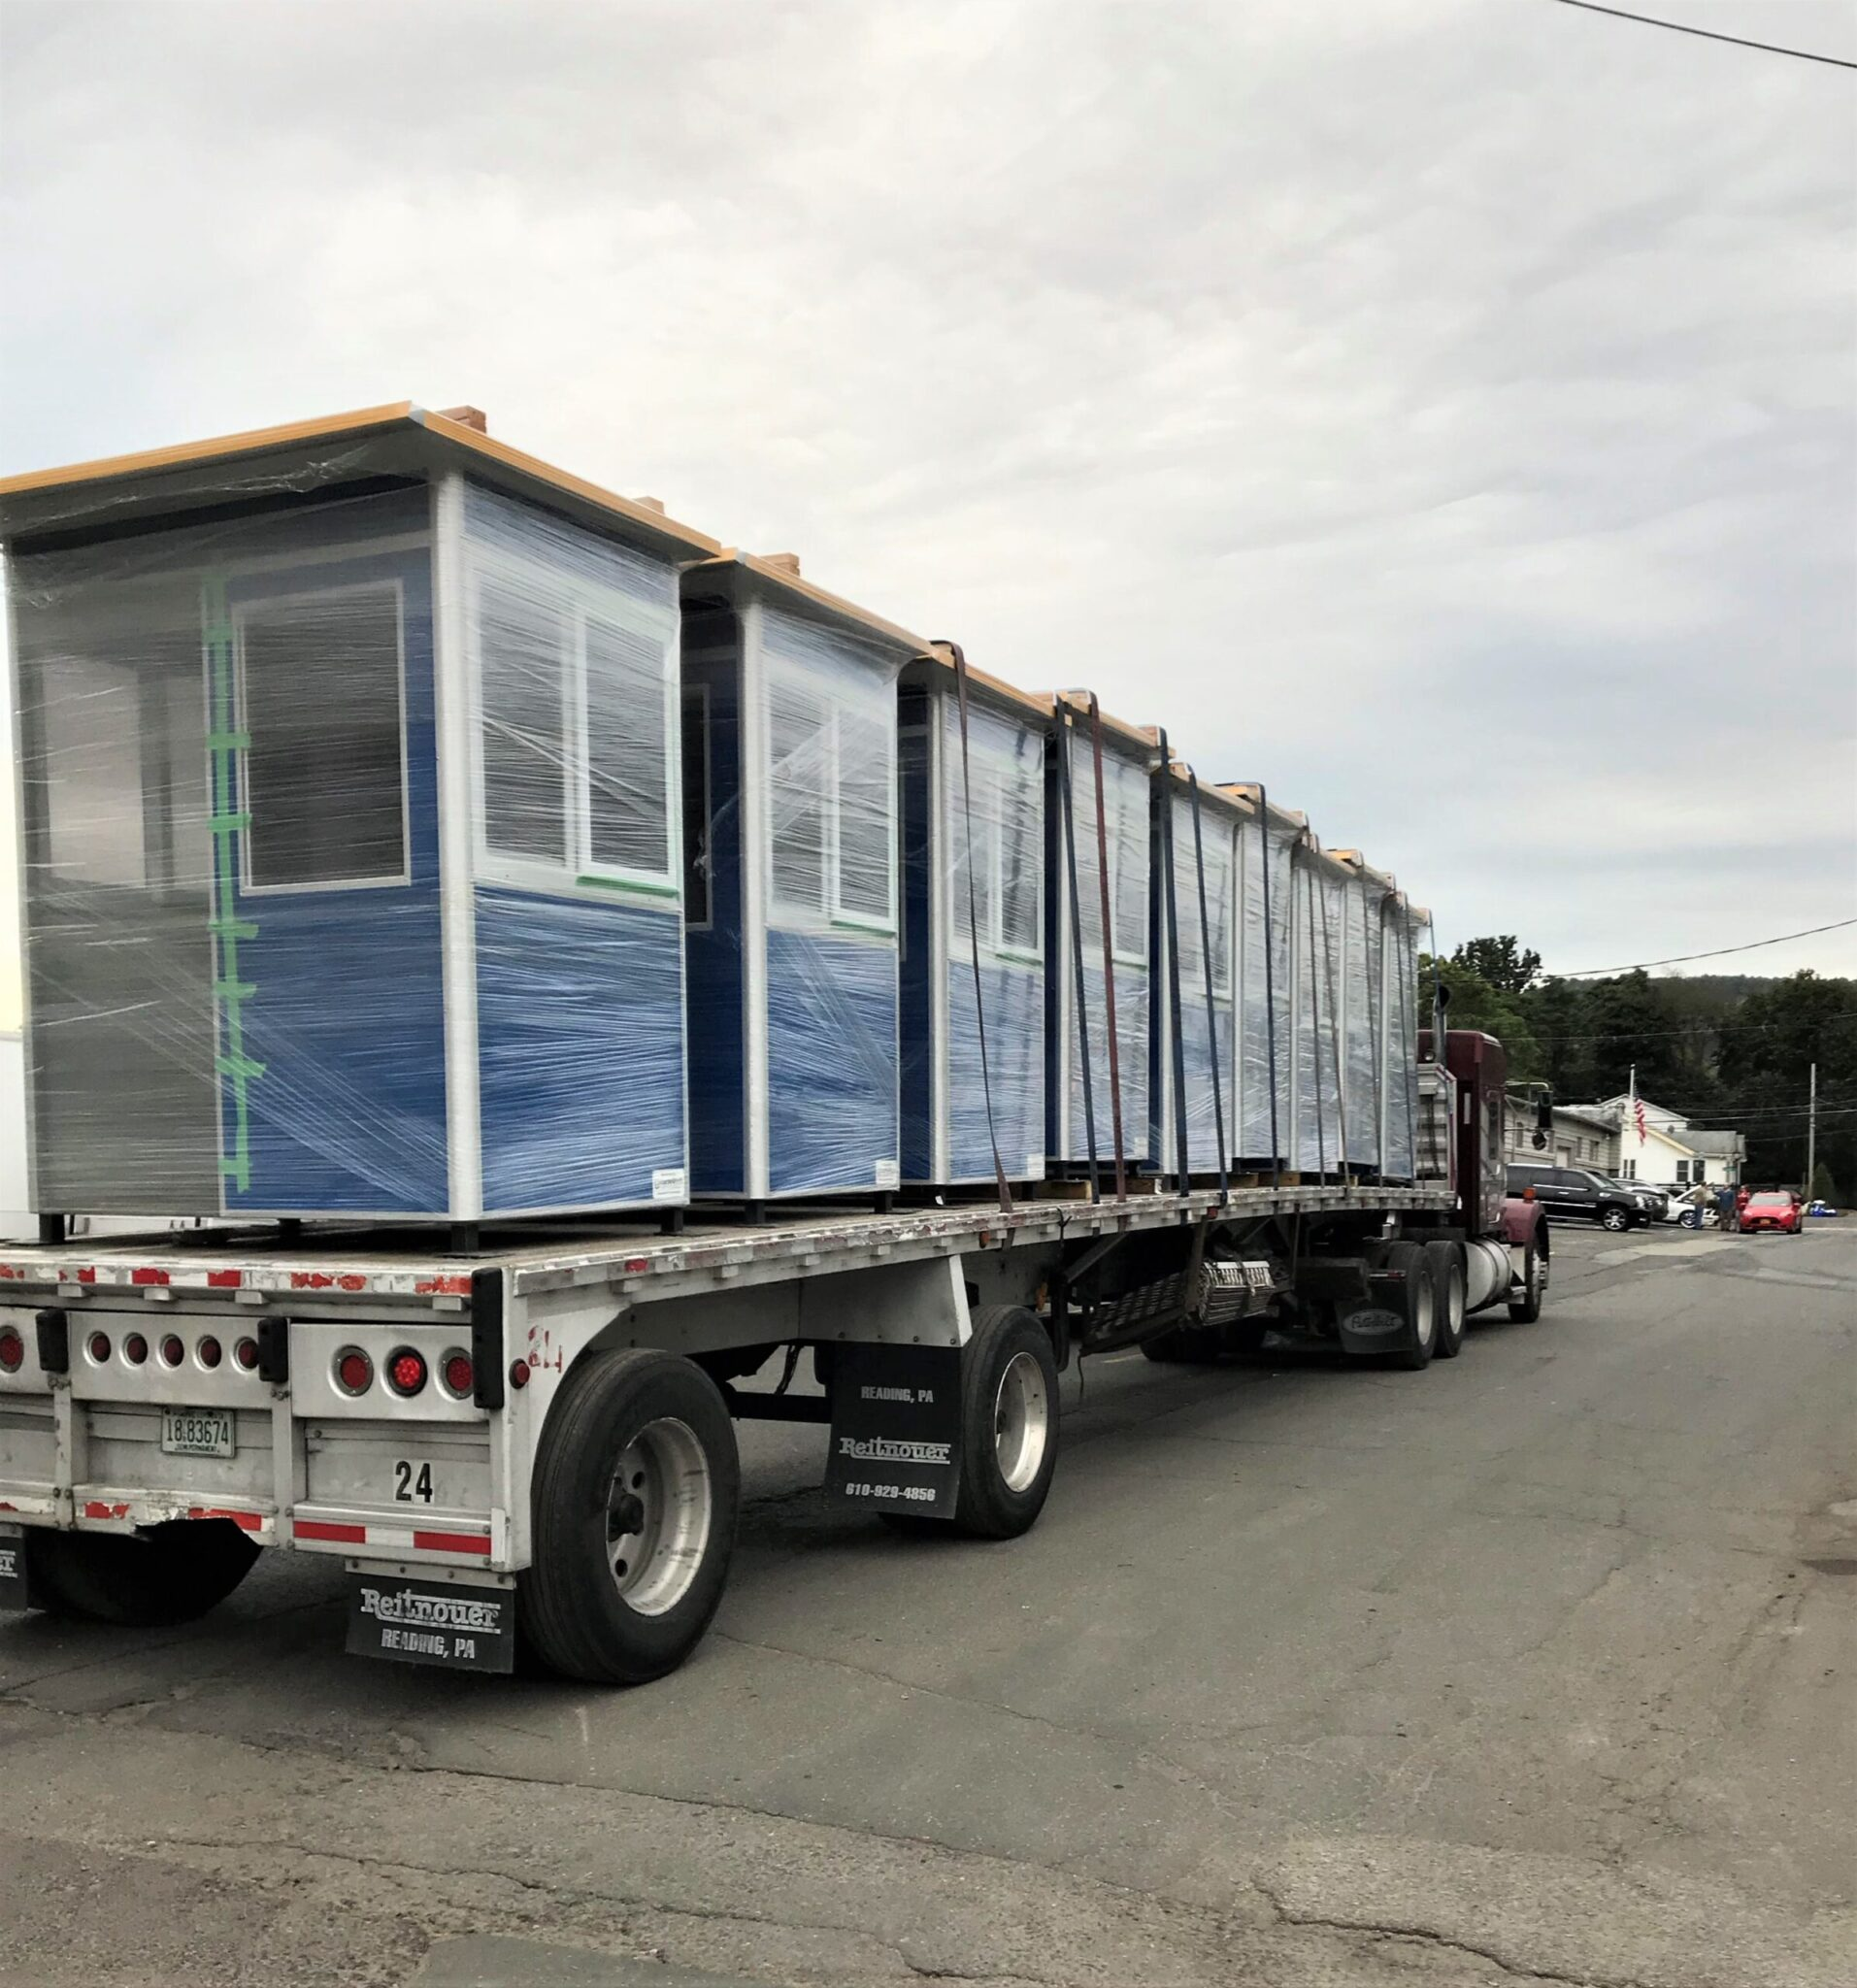 4x6 Booths Ready for Delivery in Ft Lauderdale, FL with Sliding Door, Sliding Windows, and Anchoring Brackets